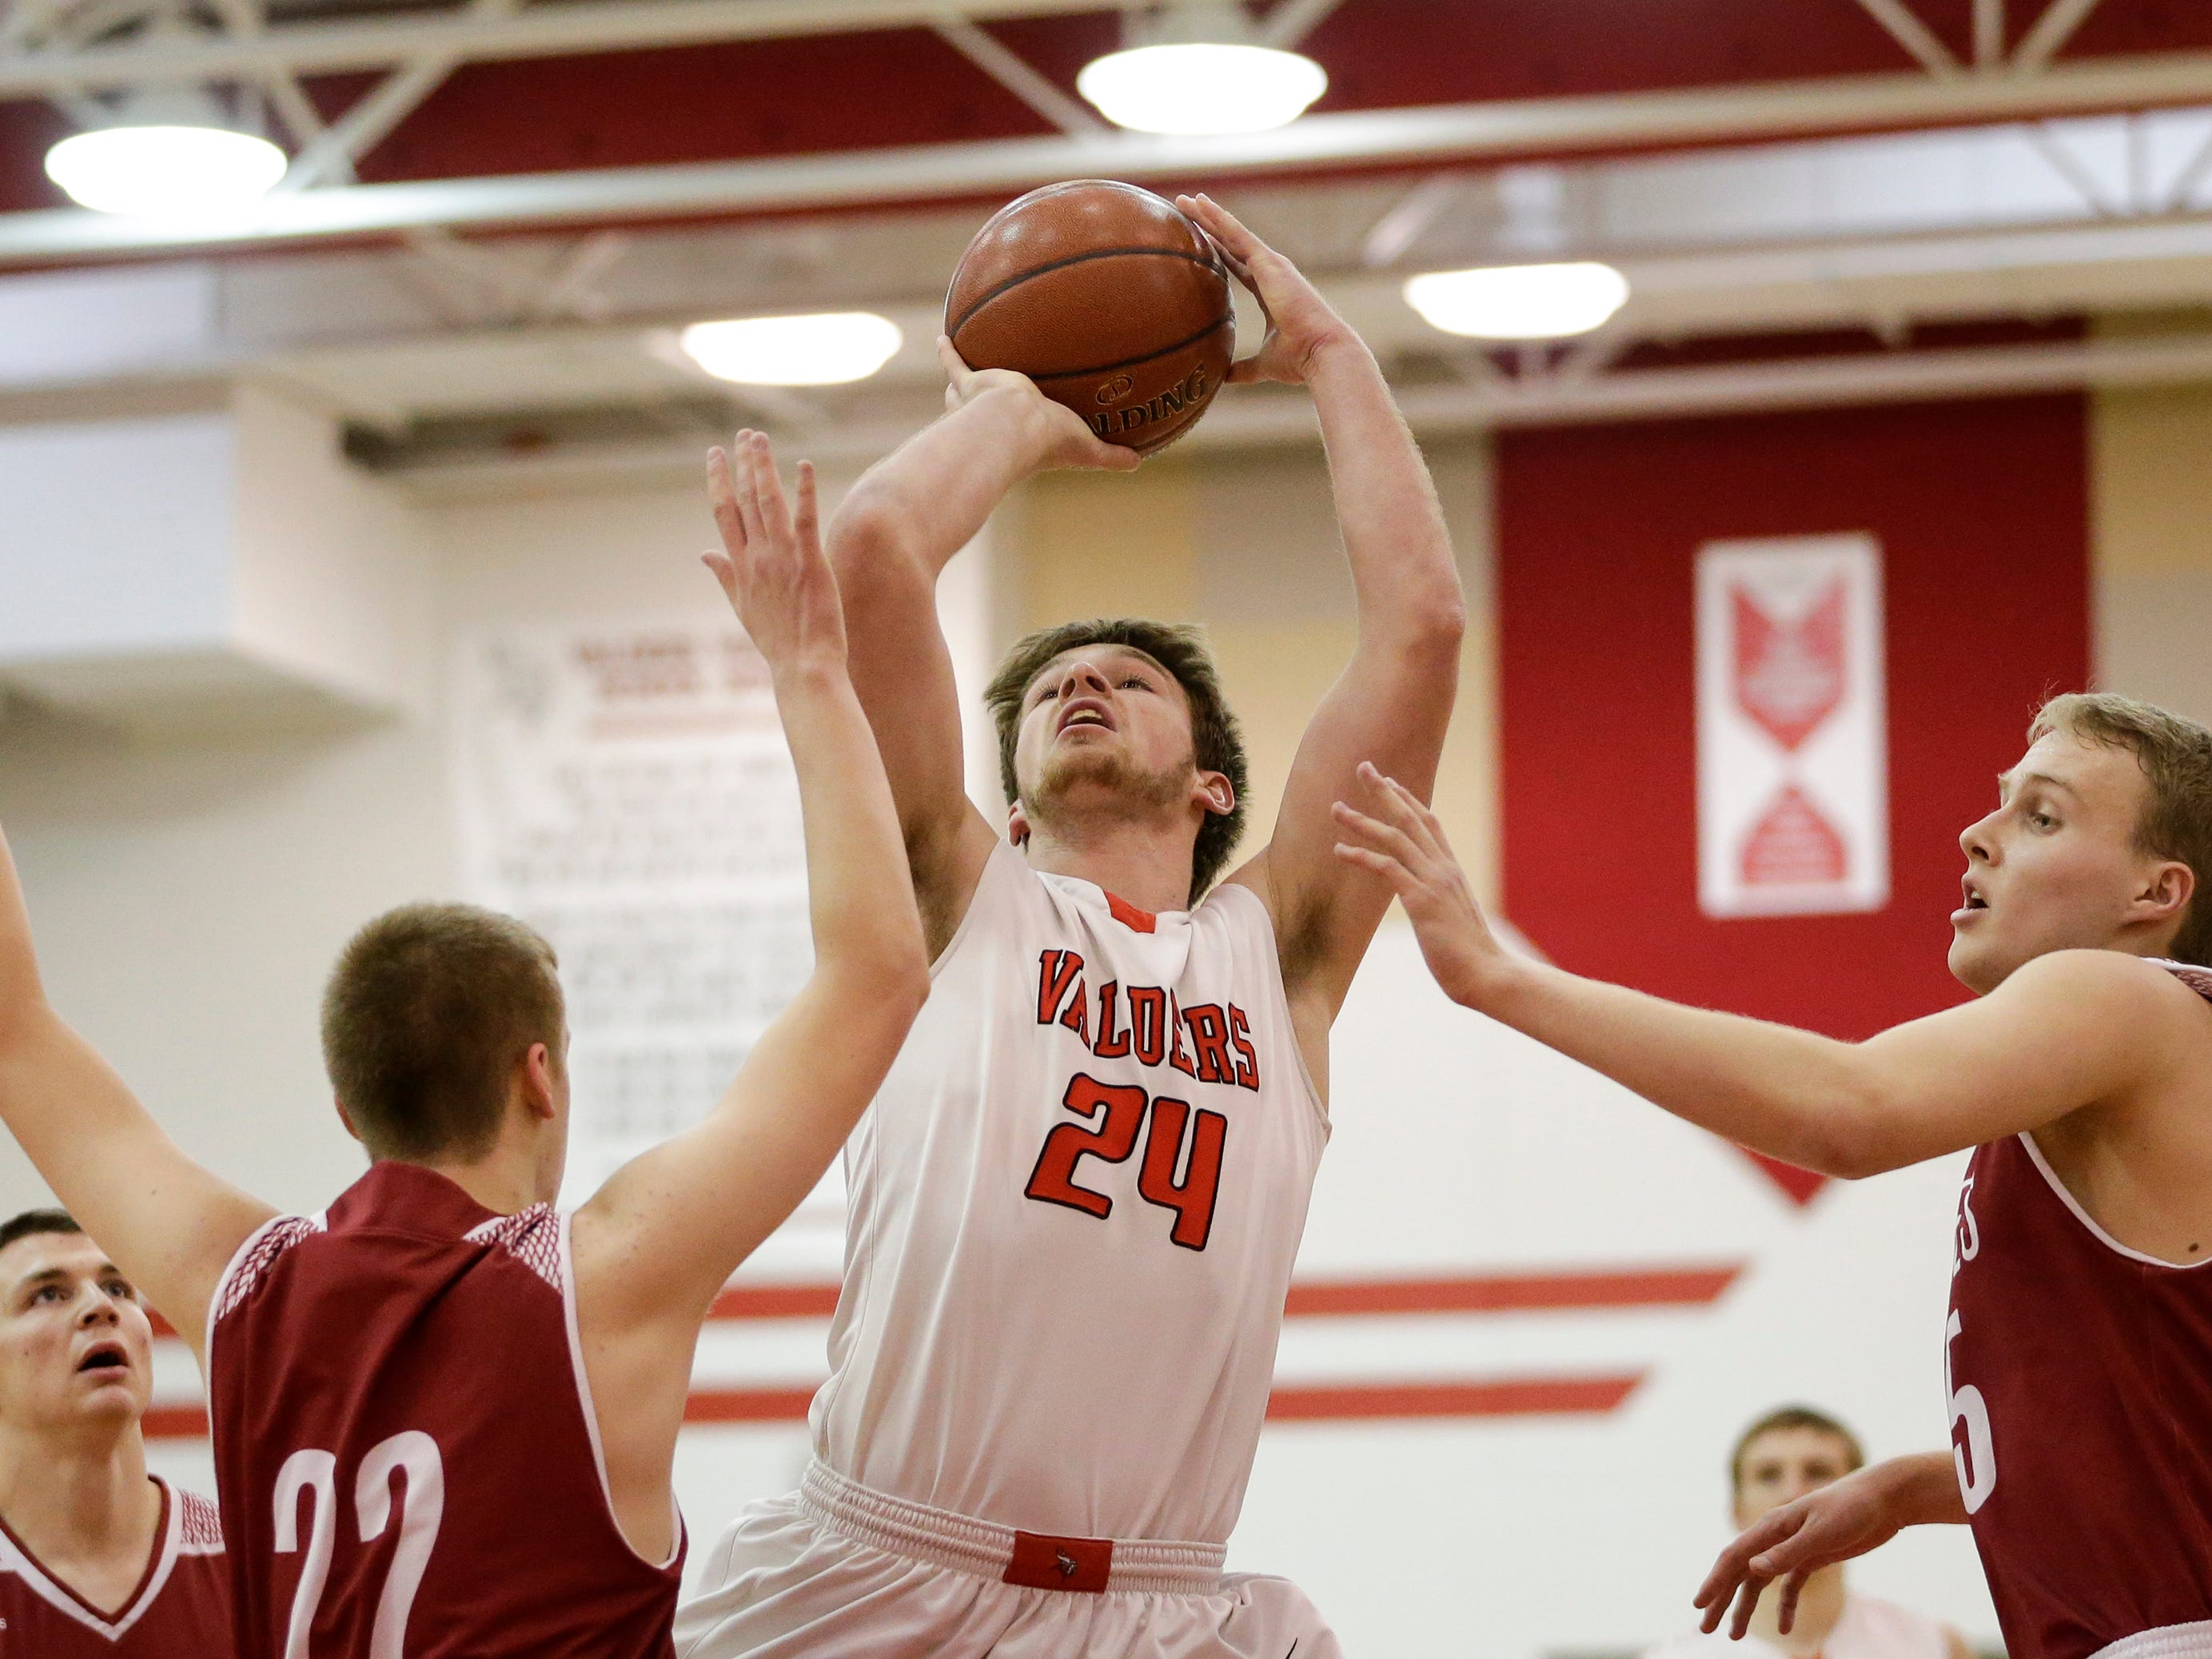 Valders' Fletcher Dallas shoots against New Holstein during an EWC matchup at Valders High School Tuesday, January 15, 2019, in Valders, Wis. Joshua Clark/USA TODAY NETWORK-Wisconsin